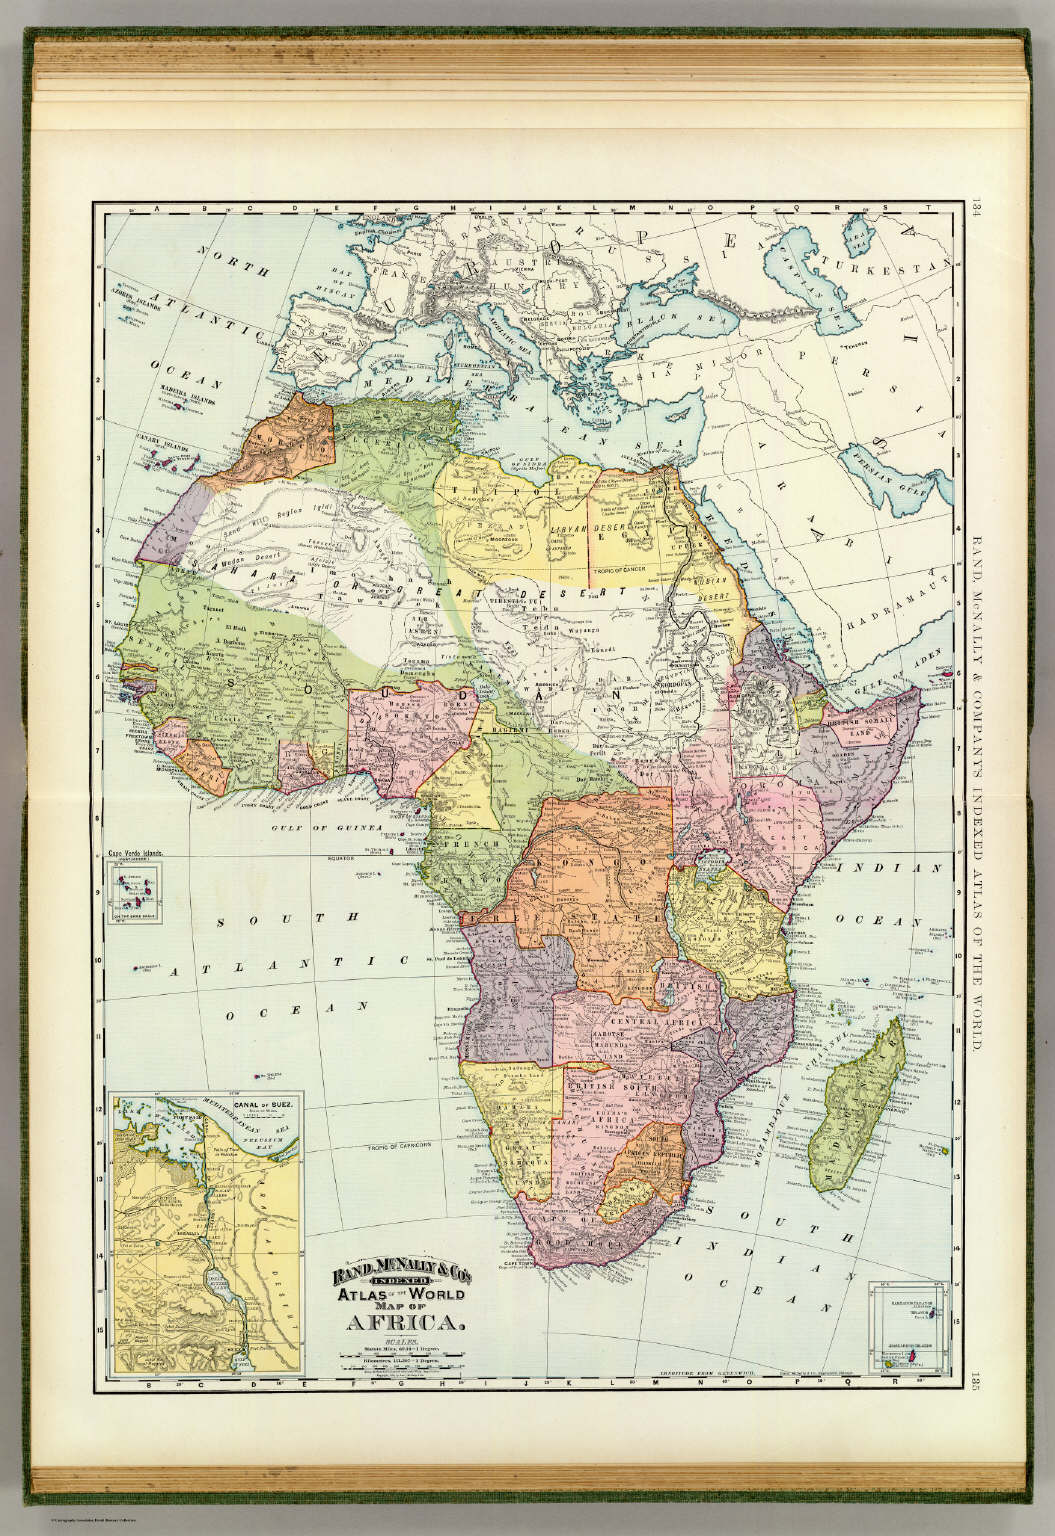 Suez Canal On Africa Map.Africa Suez Canal David Rumsey Historical Map Collection